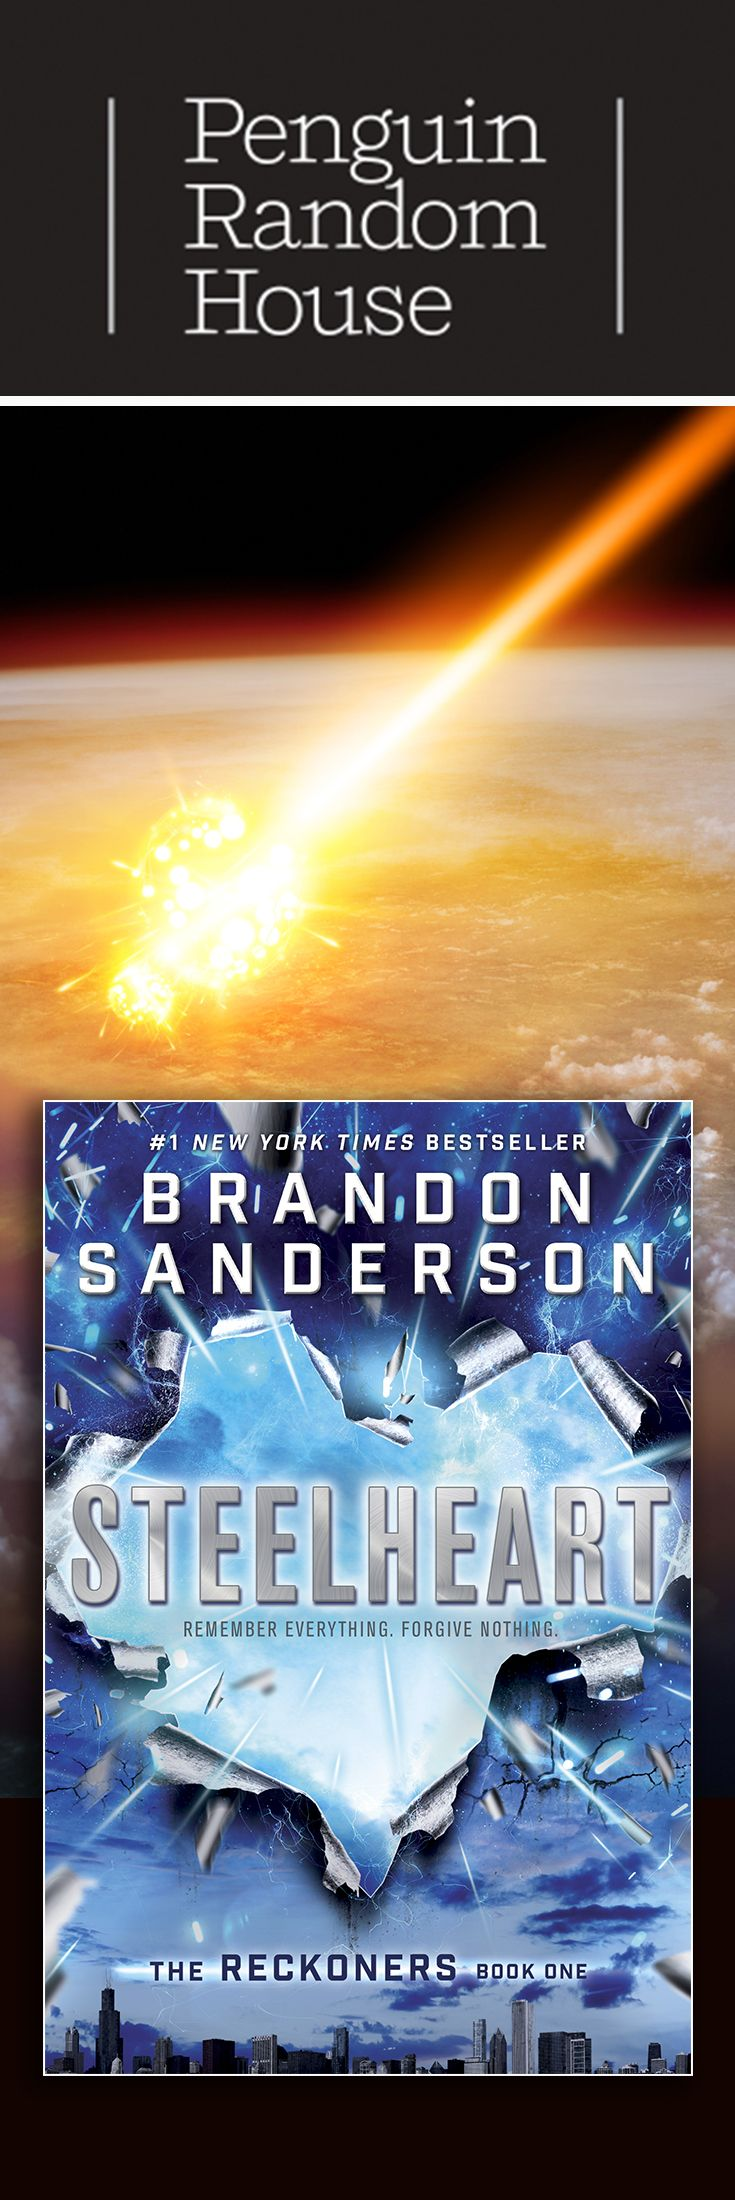 Brandon Sanderson's Steelheart is the perfect book for teen boys who like comics and superheros. See why this first book in The Reckoners series is getting so much attention.   http://www.penguinrandomhouse.com/books/225009/steelheart-by-brandon-sanderson/9780385743570/?utm_source=Pinterest&utm_medium=1.4p